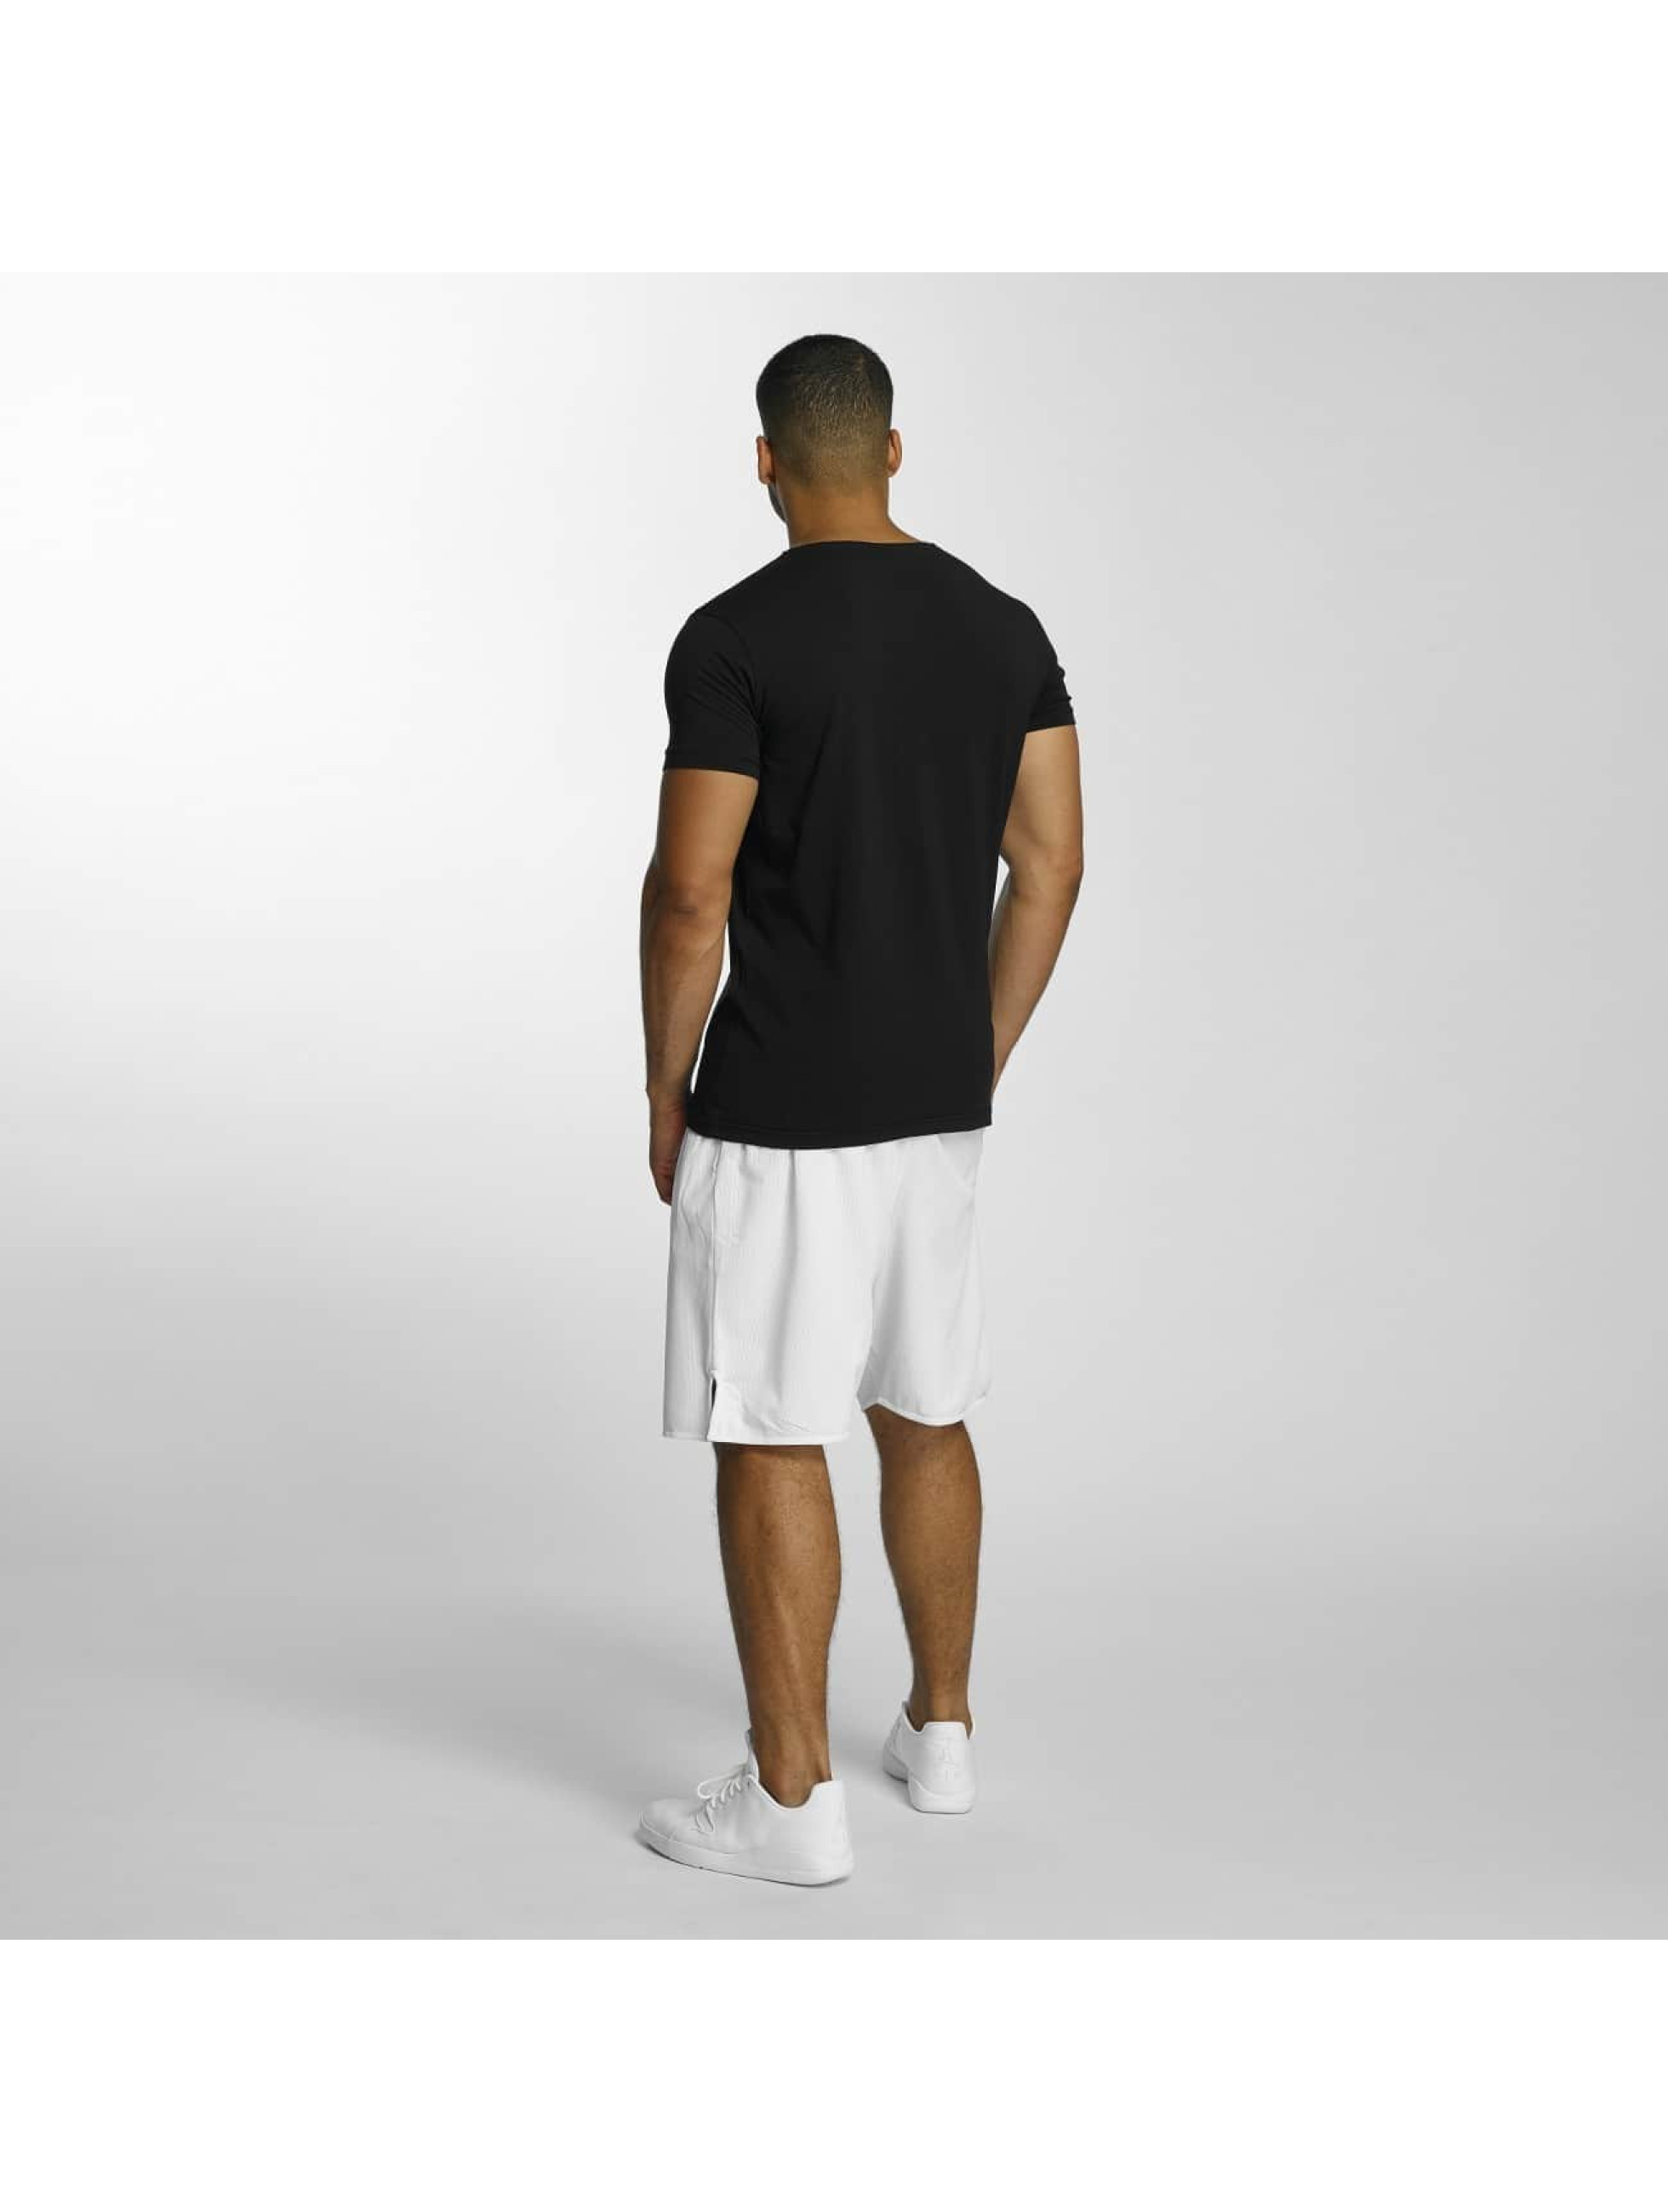 DEF T-Shirt Come Out noir